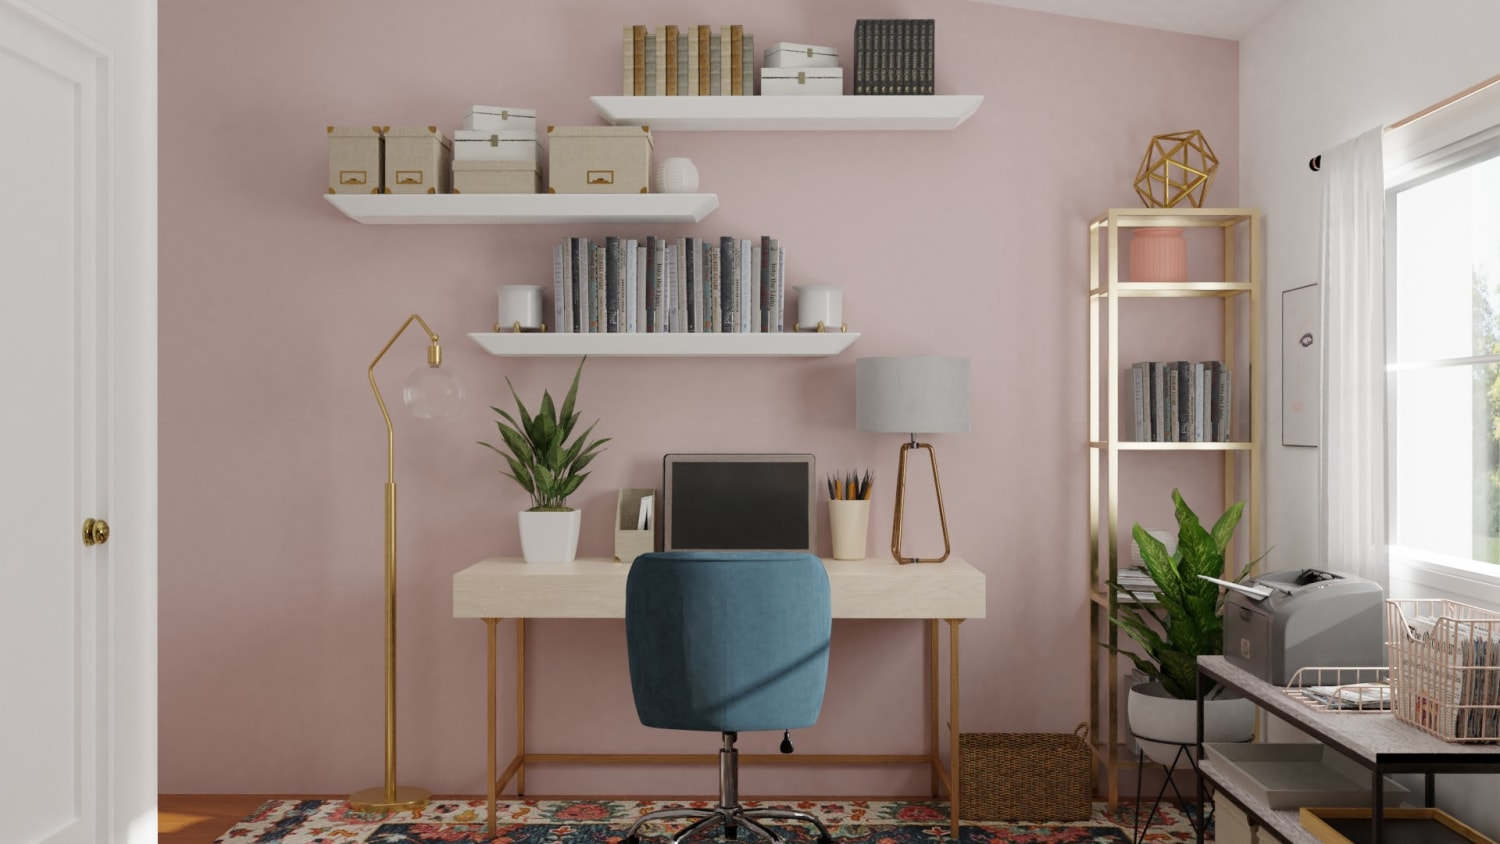 Spacejoy review of Home Office Designed For Adriana Pachas